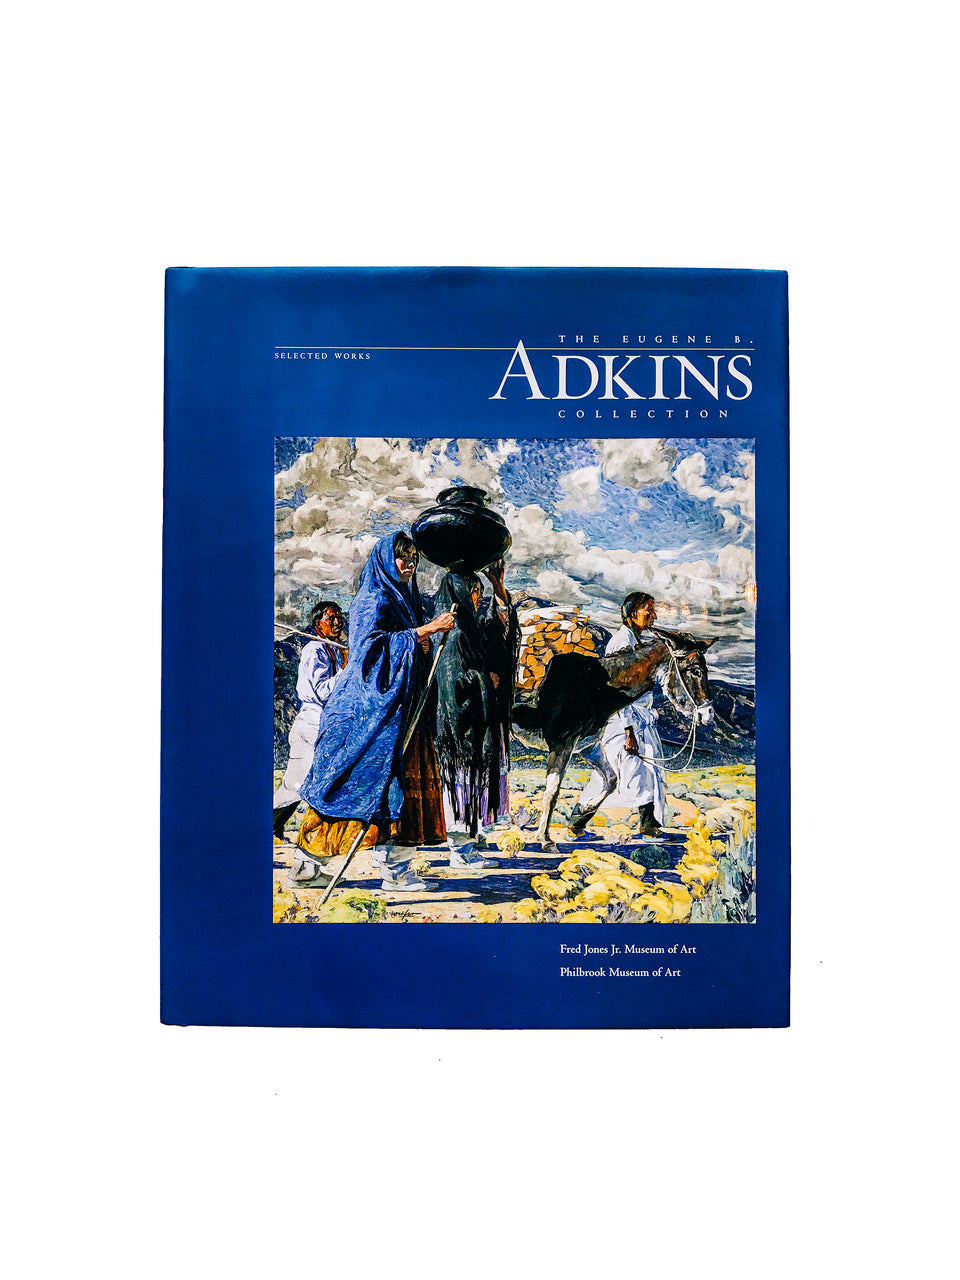 The Adkins Collection Catalogue